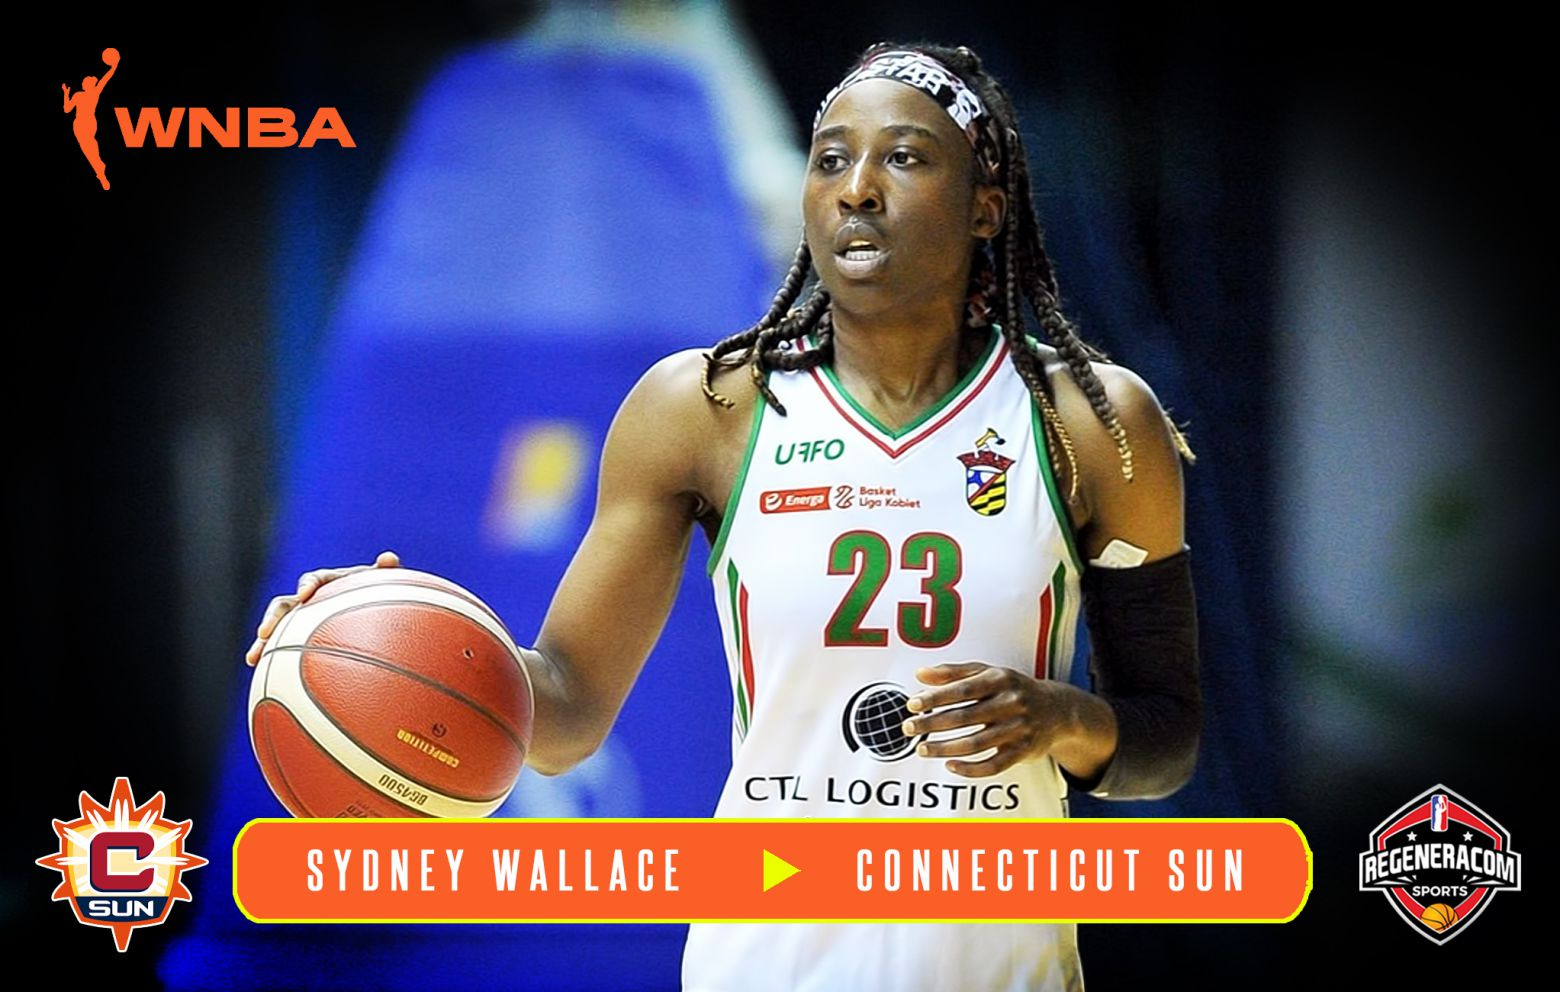 SYDNEY WALLACE has signed with the Connecticut Sun for the 2021 WNBA